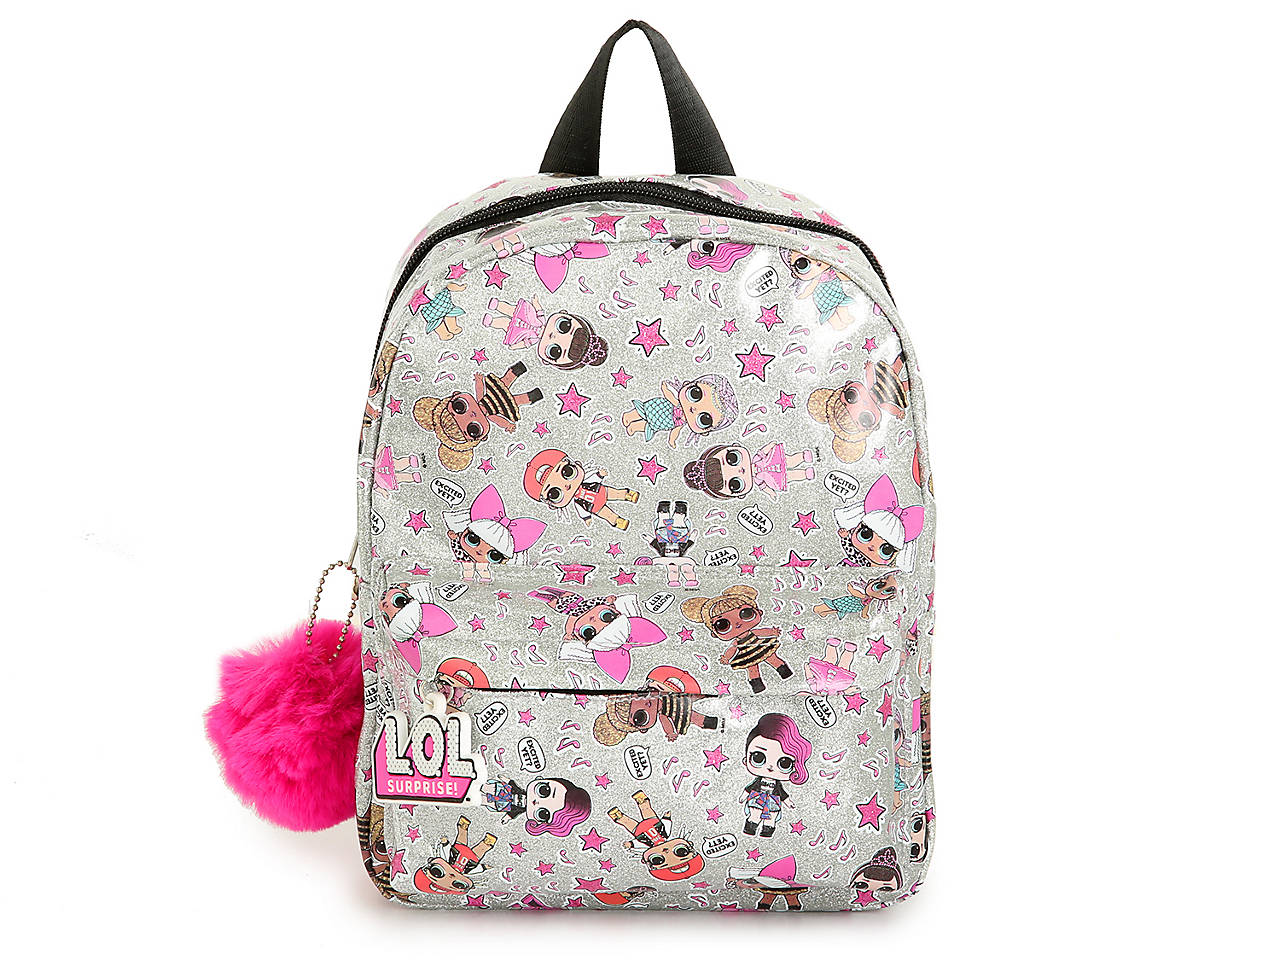 ACCESSORY INNOVATIONS LOL SURPRISE MINI BACKPACK